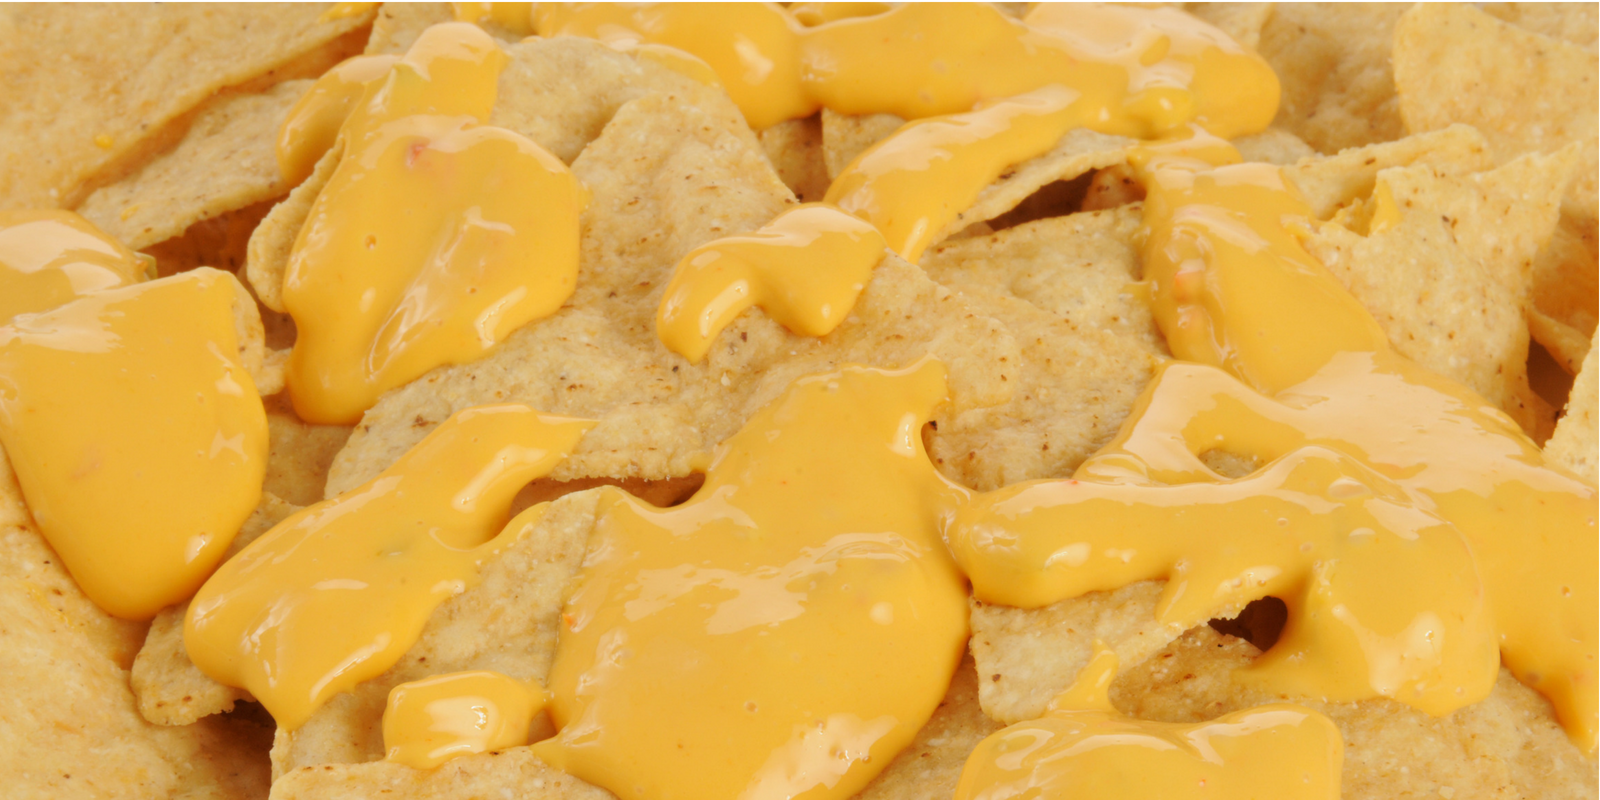 Smothered In Queso